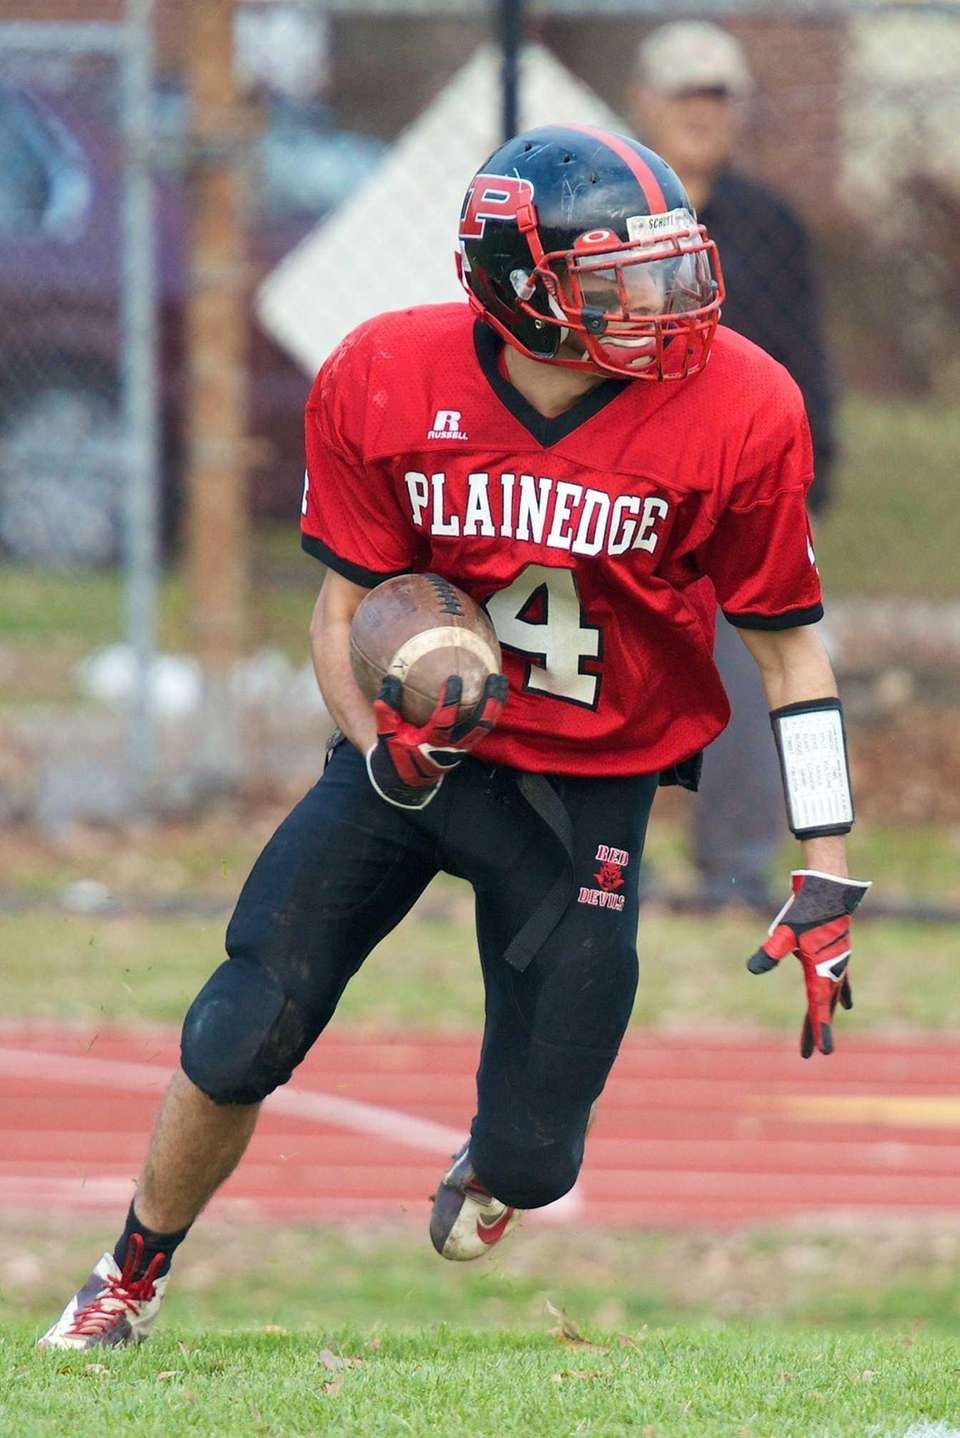 Plainedge receiver Nick Cupolo returns a kickoff against